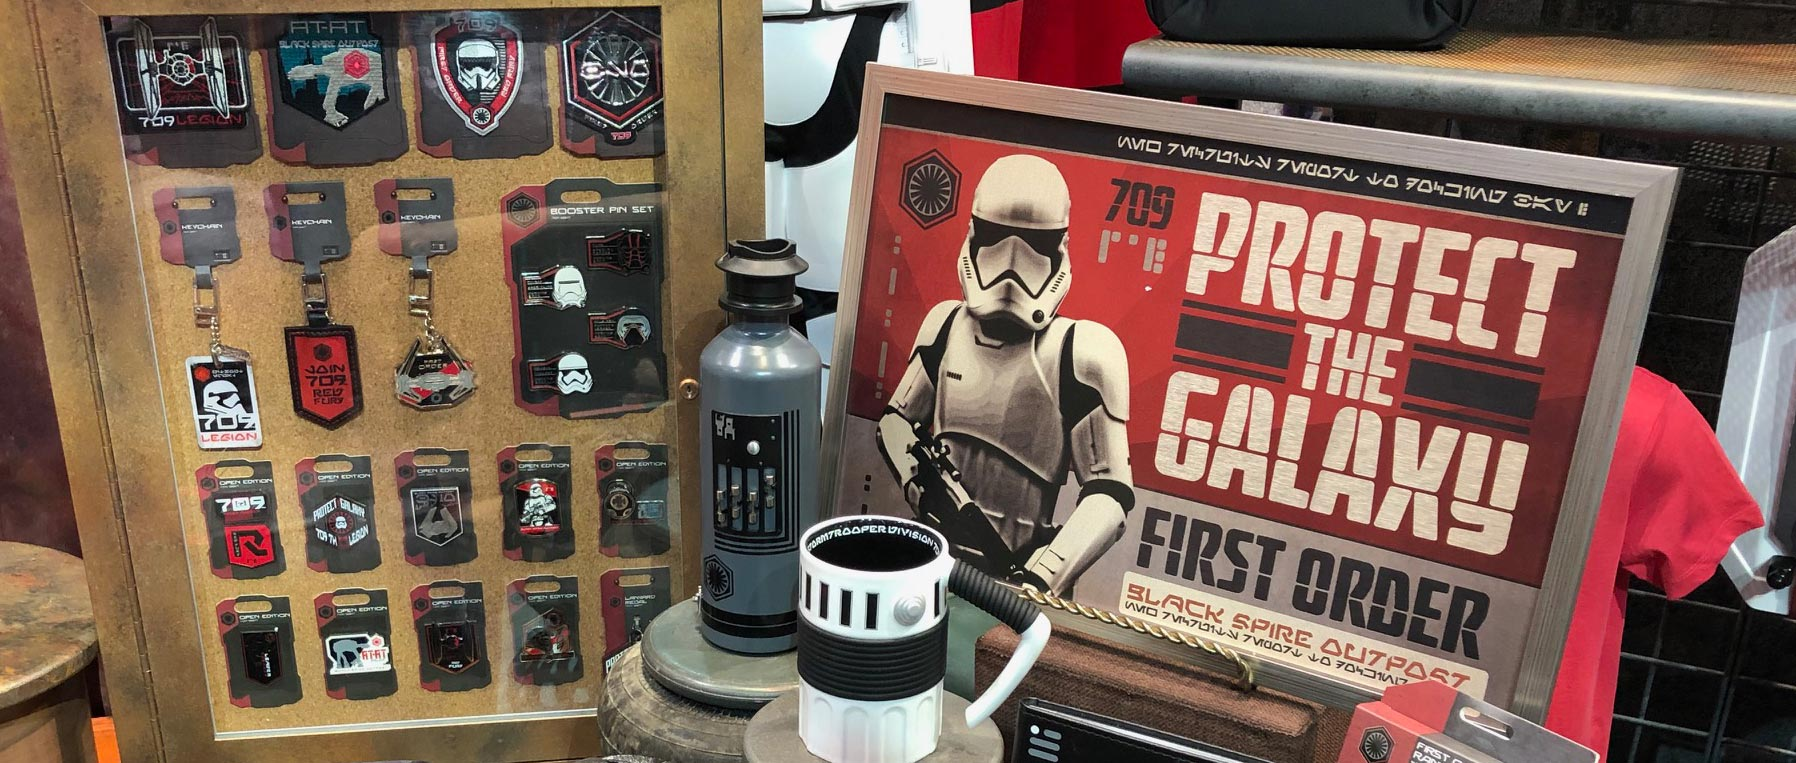 Star Wars House Items See Star Wars Galaxy S Edge Merchandise For The First Order And